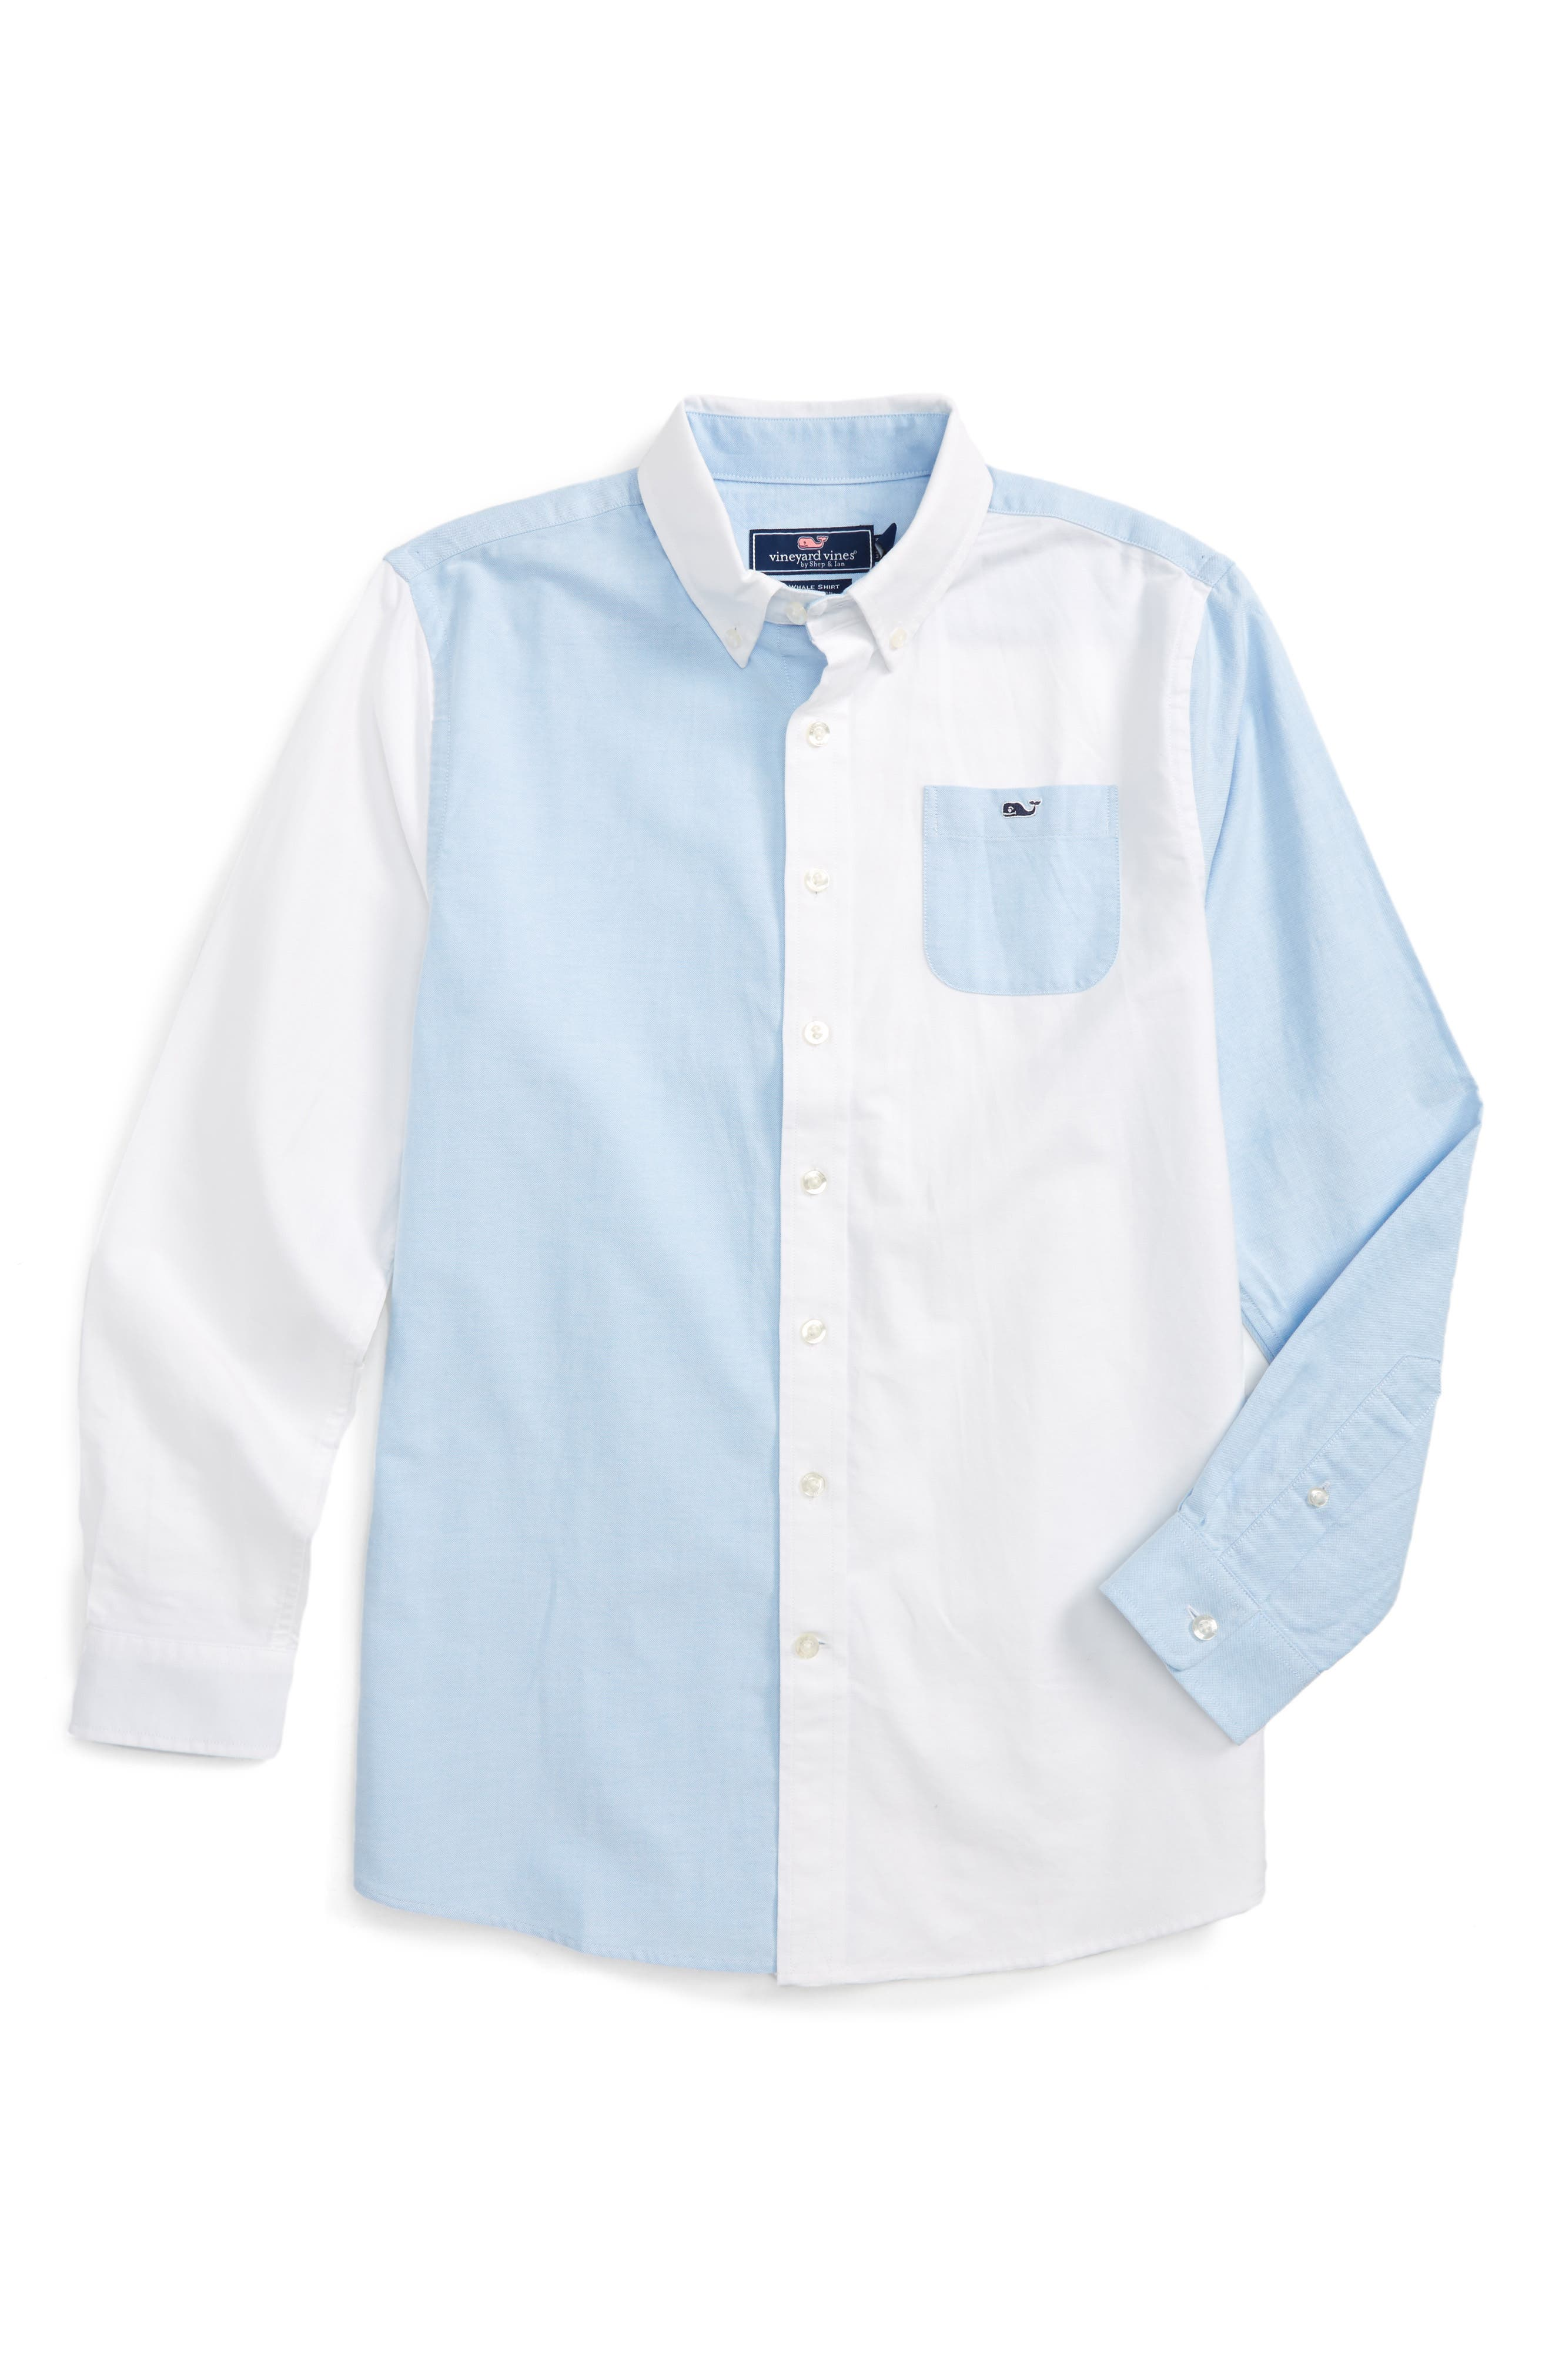 Party Whale Oxford Shirt,                         Main,                         color, Multi